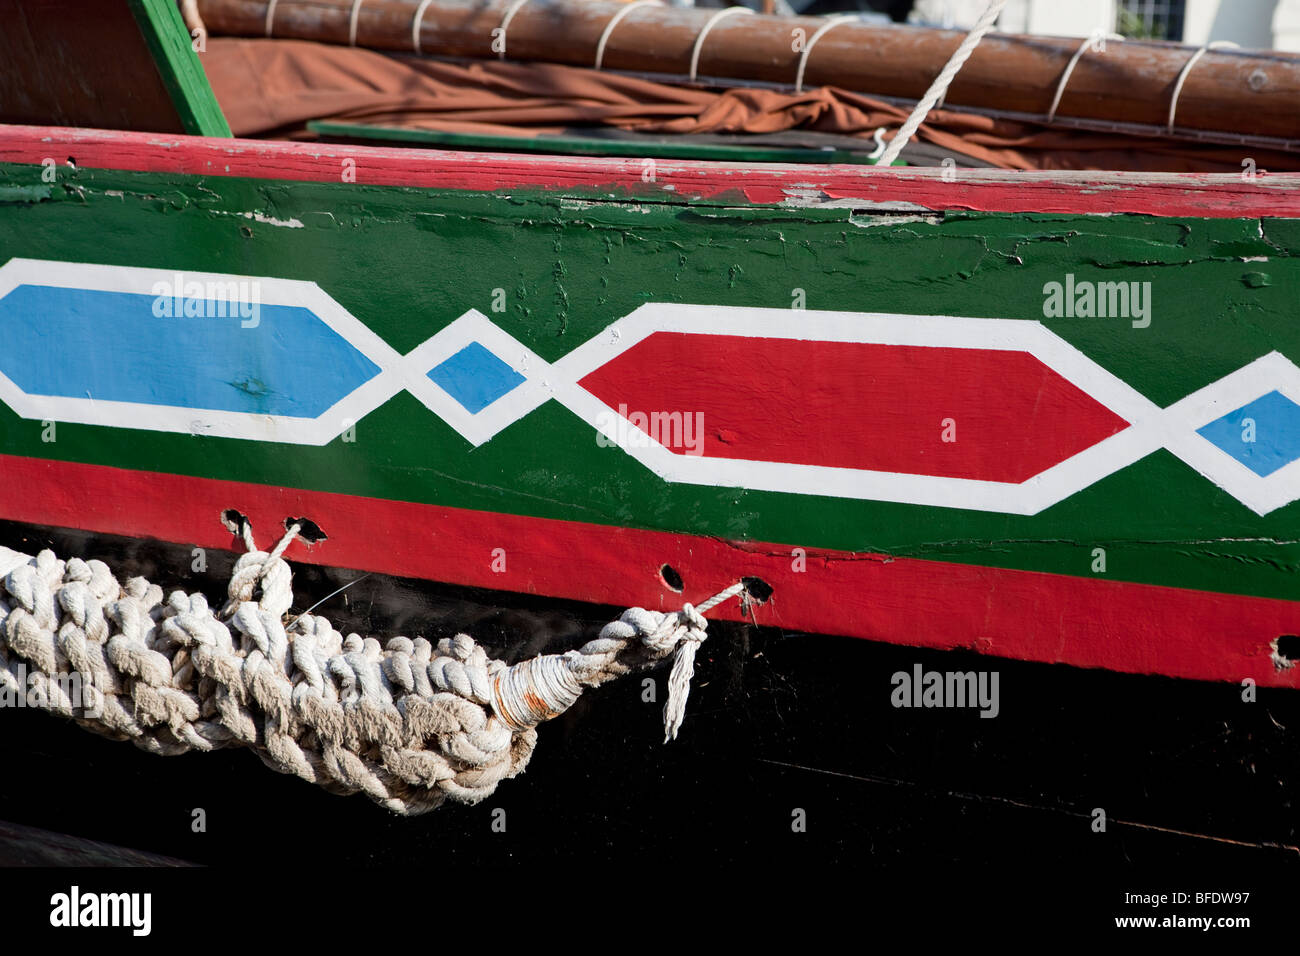 Detail of an historic fishing boat with painted decorations. Chioggia, Veneto, Italy - Stock Image